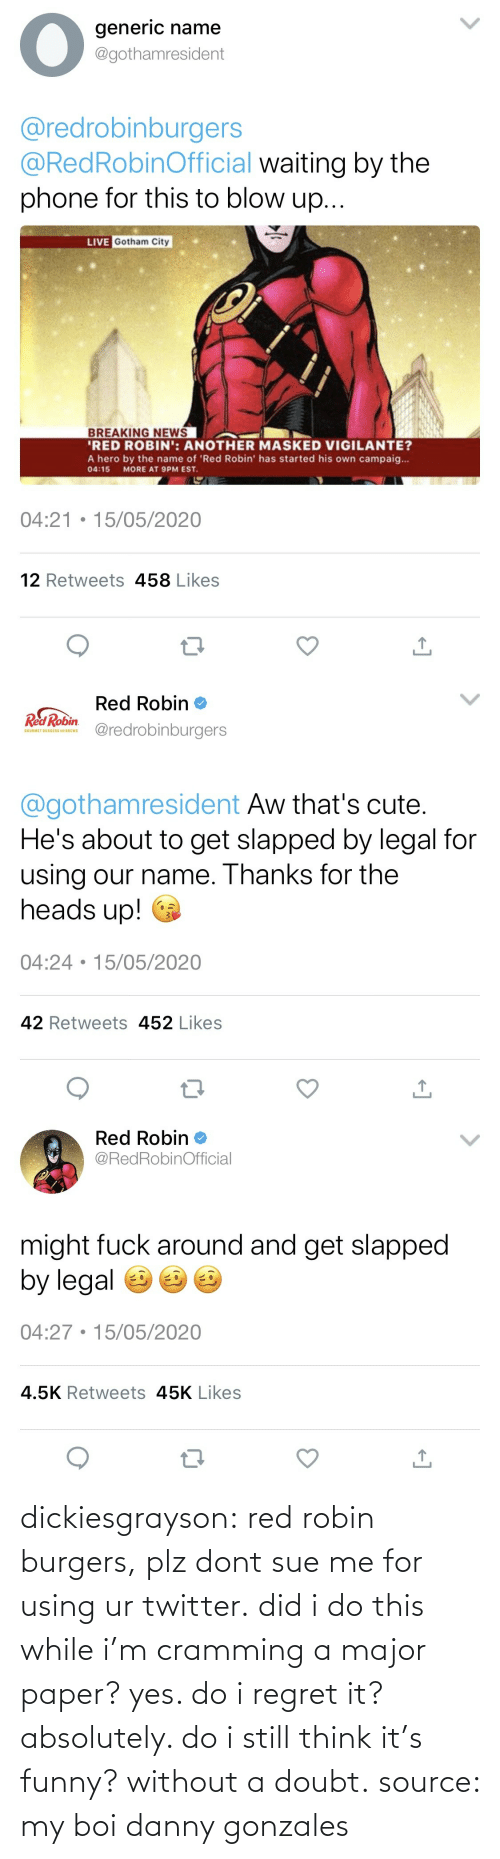 absolutely: dickiesgrayson:  red robin burgers, plz dont sue me for using ur twitter. did i do this while i'm cramming a major paper? yes. do i regret it? absolutely. do i still think it's funny? without a doubt. source: my boi danny gonzales